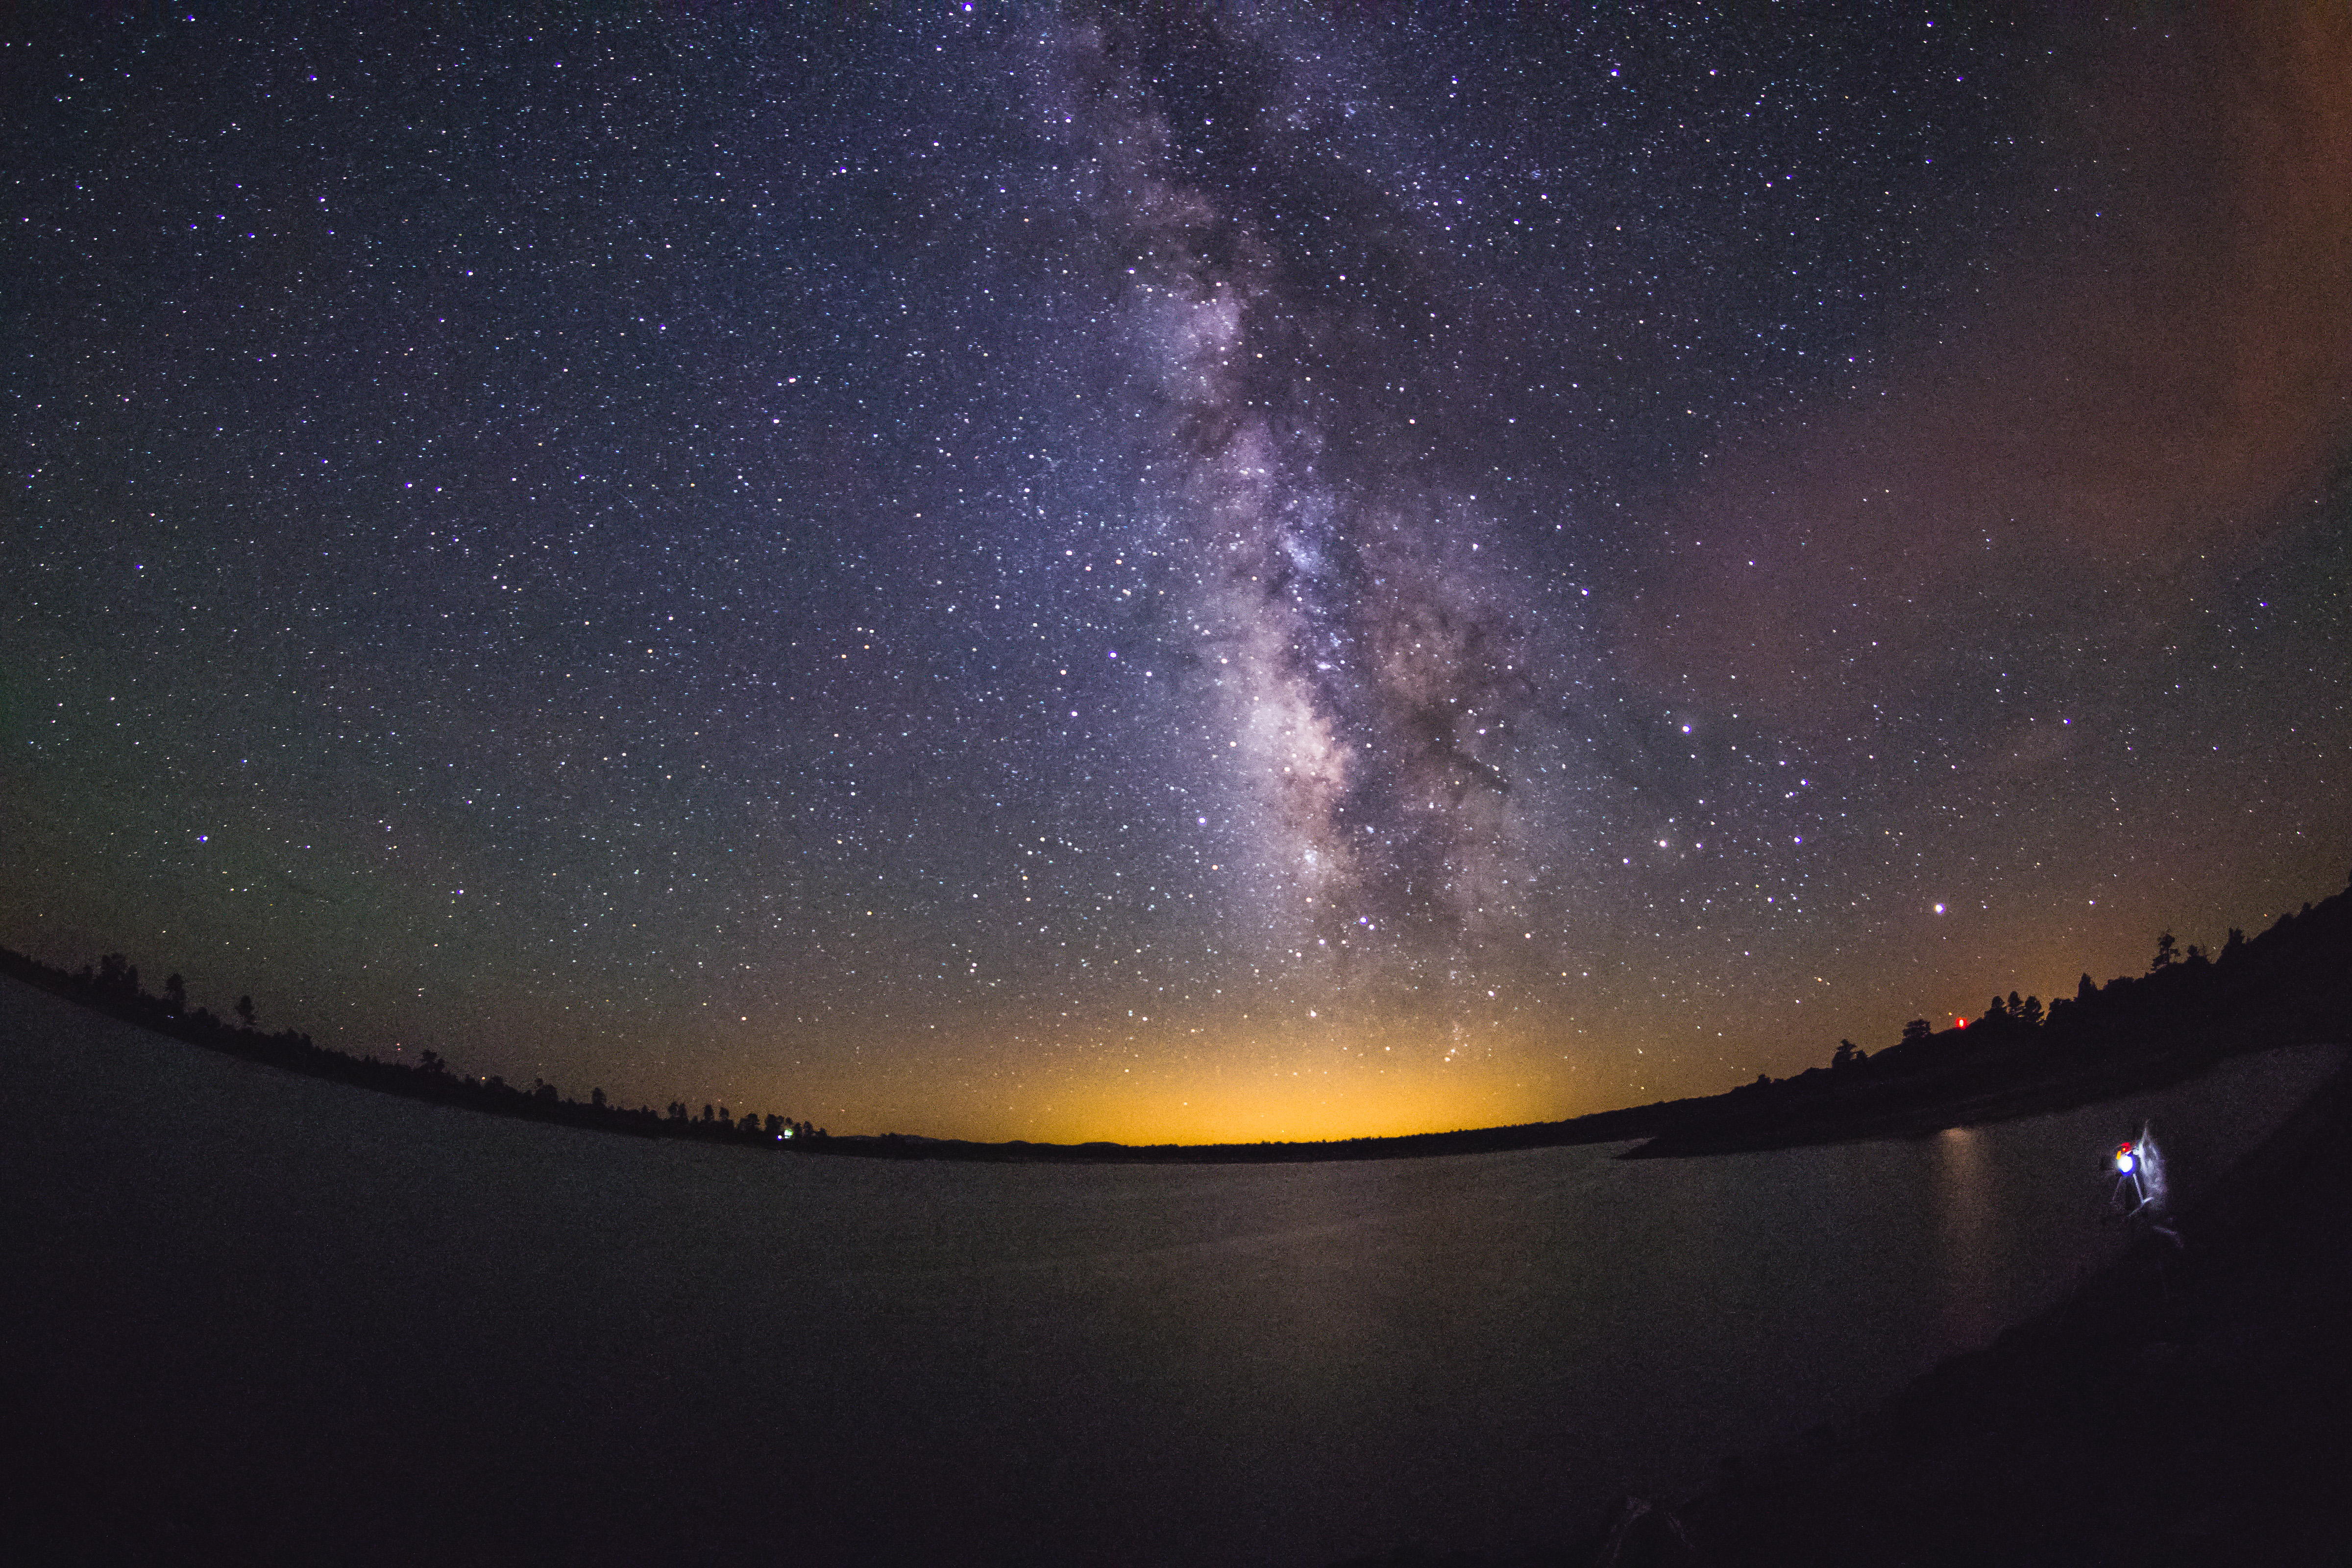 [lonely speck] milky way over ashurst lake photo